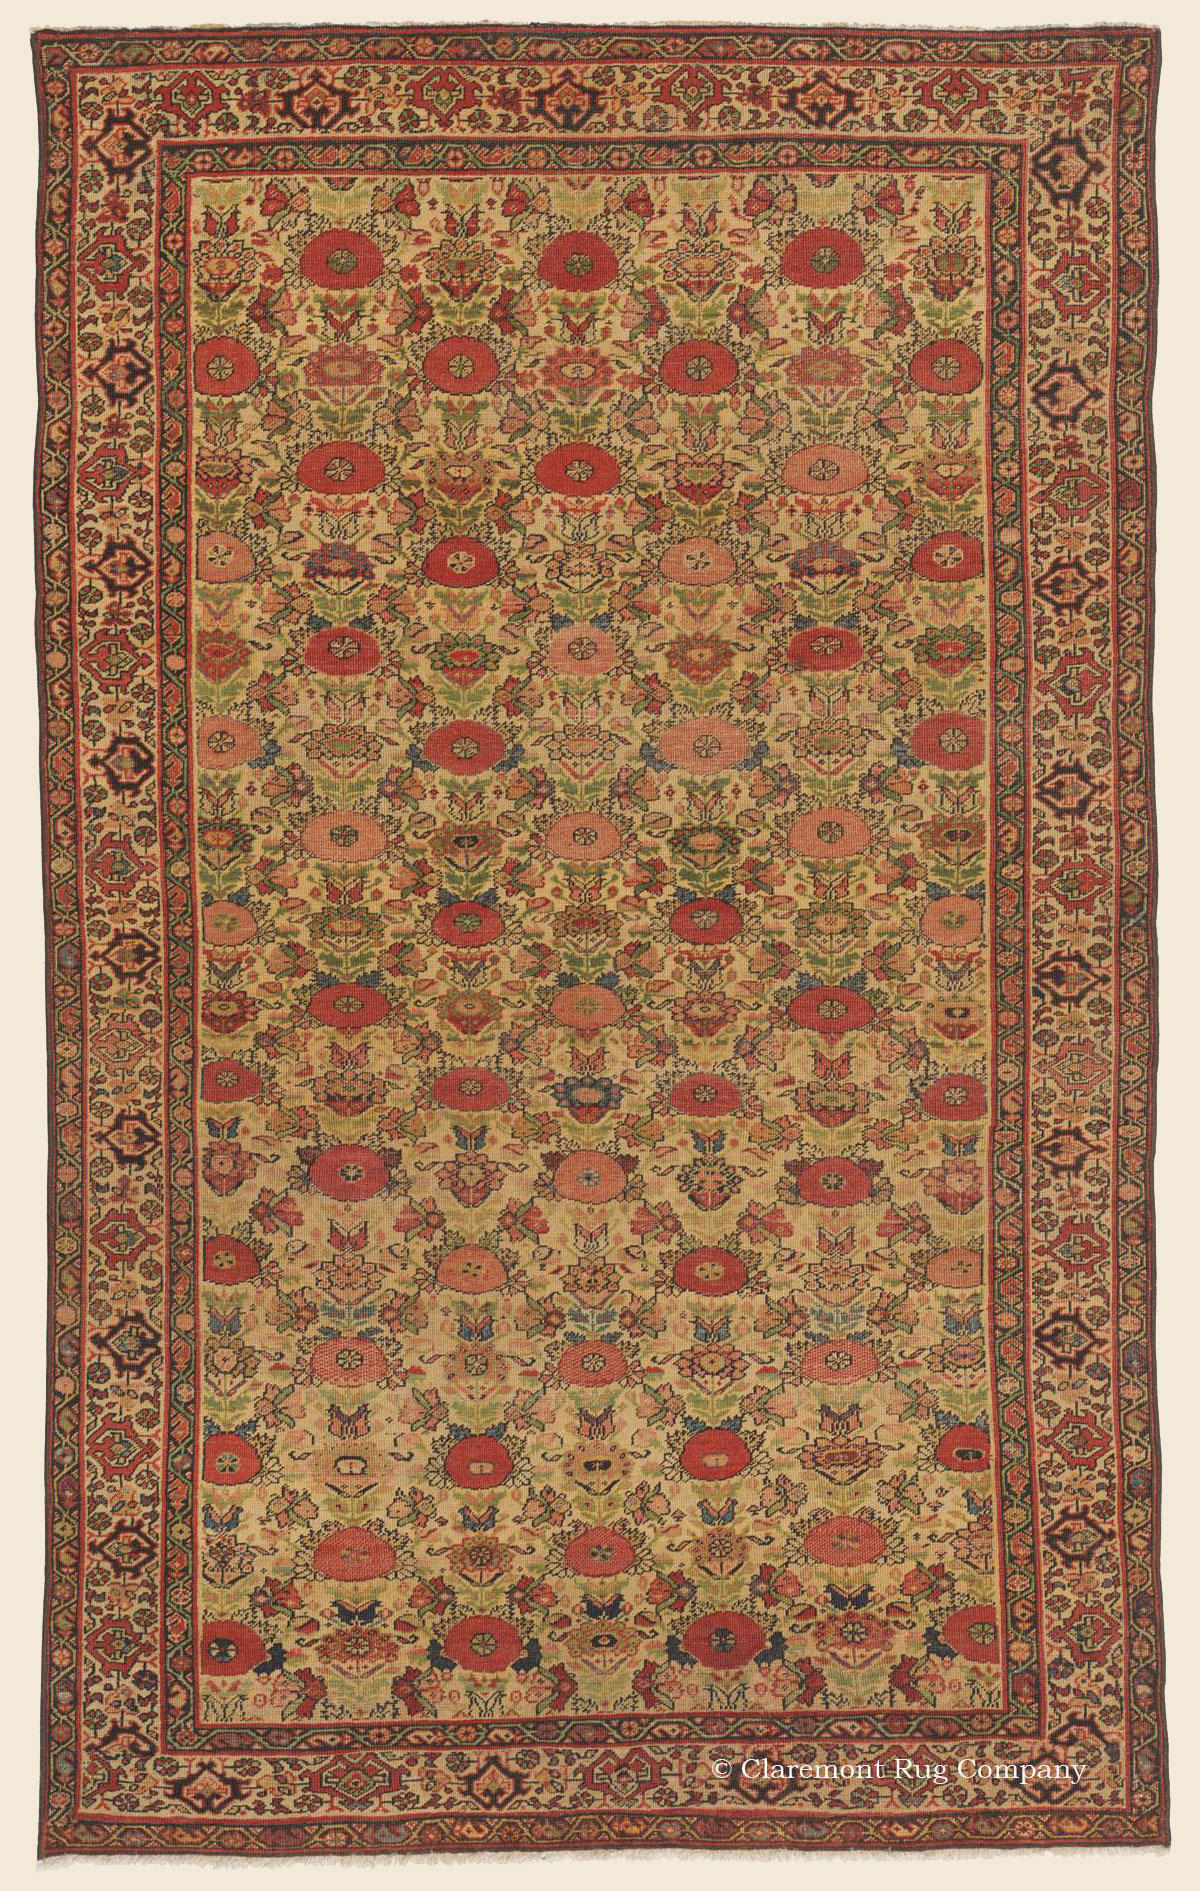 Ferahan Quot Blossom Rug Quot West Central Persian Antique Rug